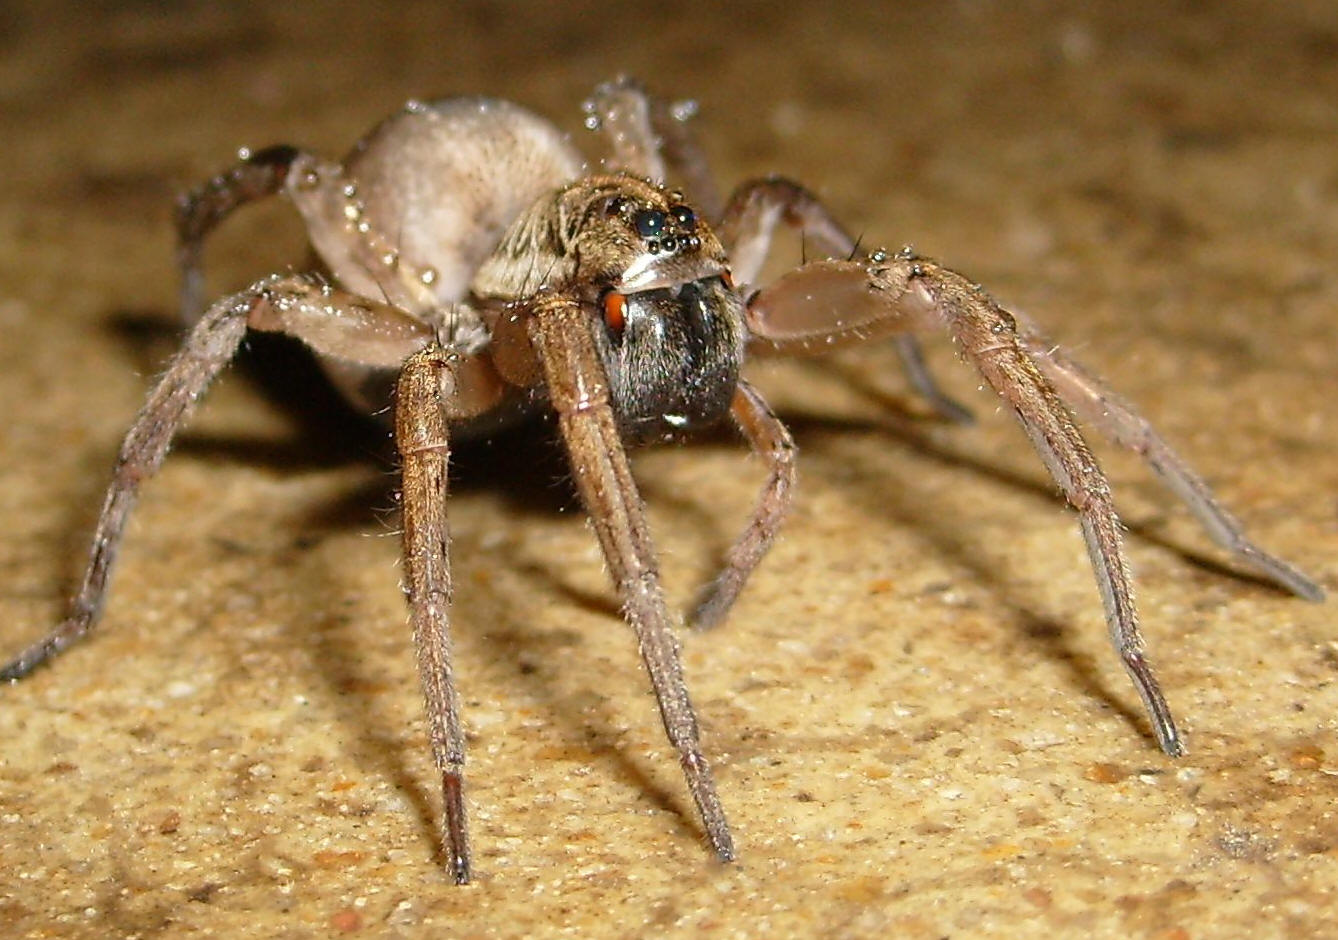 Does Permethrin Repel Spiders